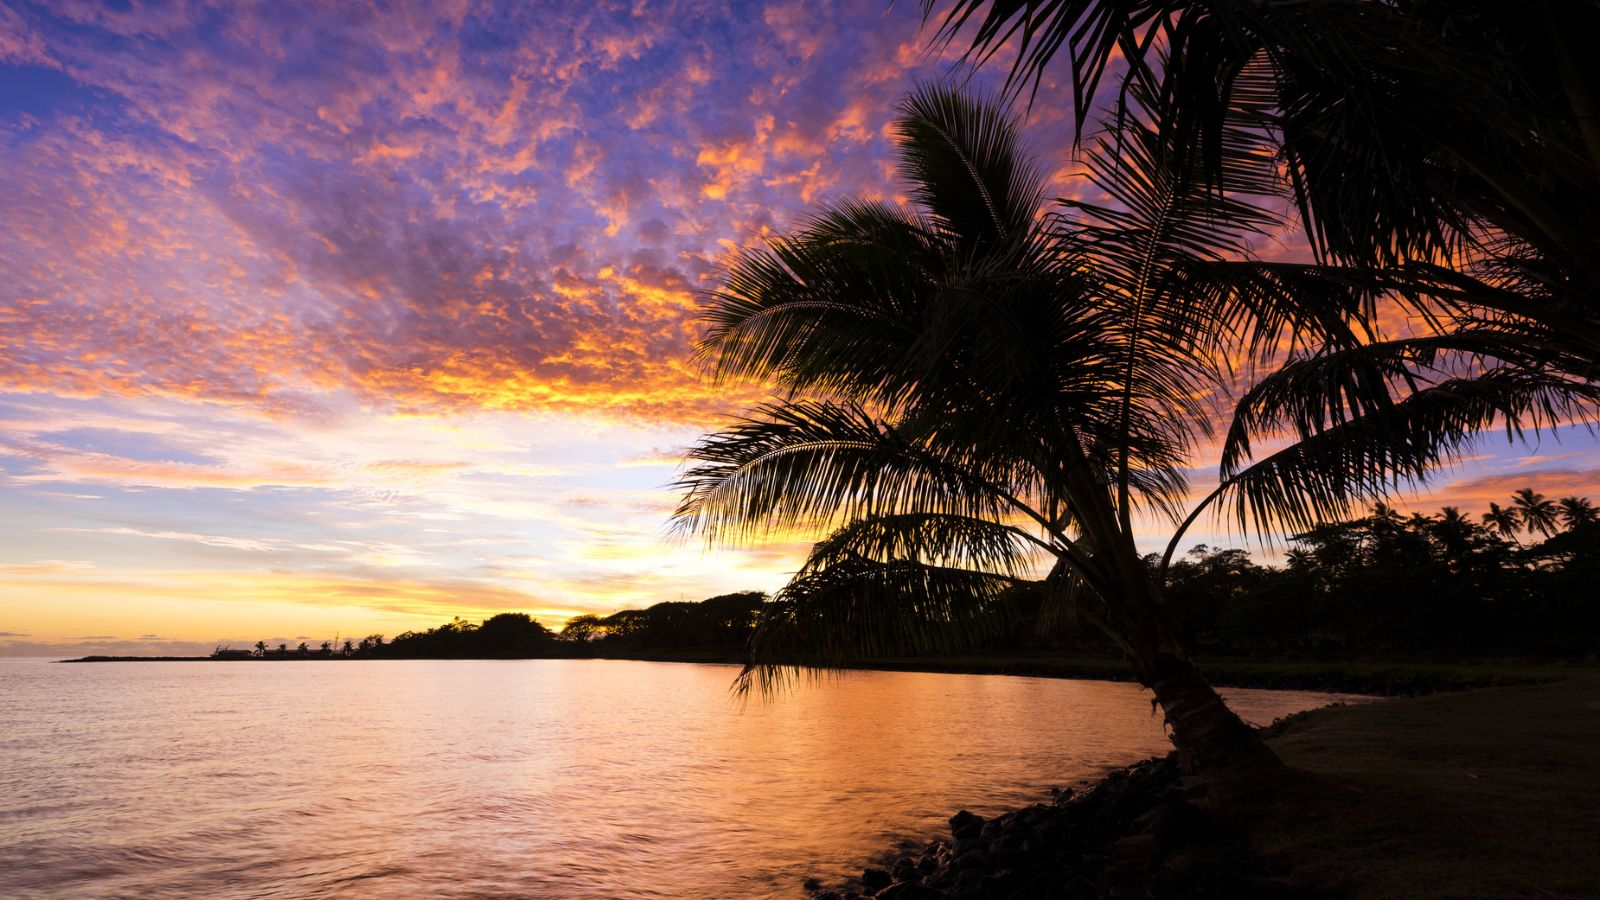 Sunset in Samoa